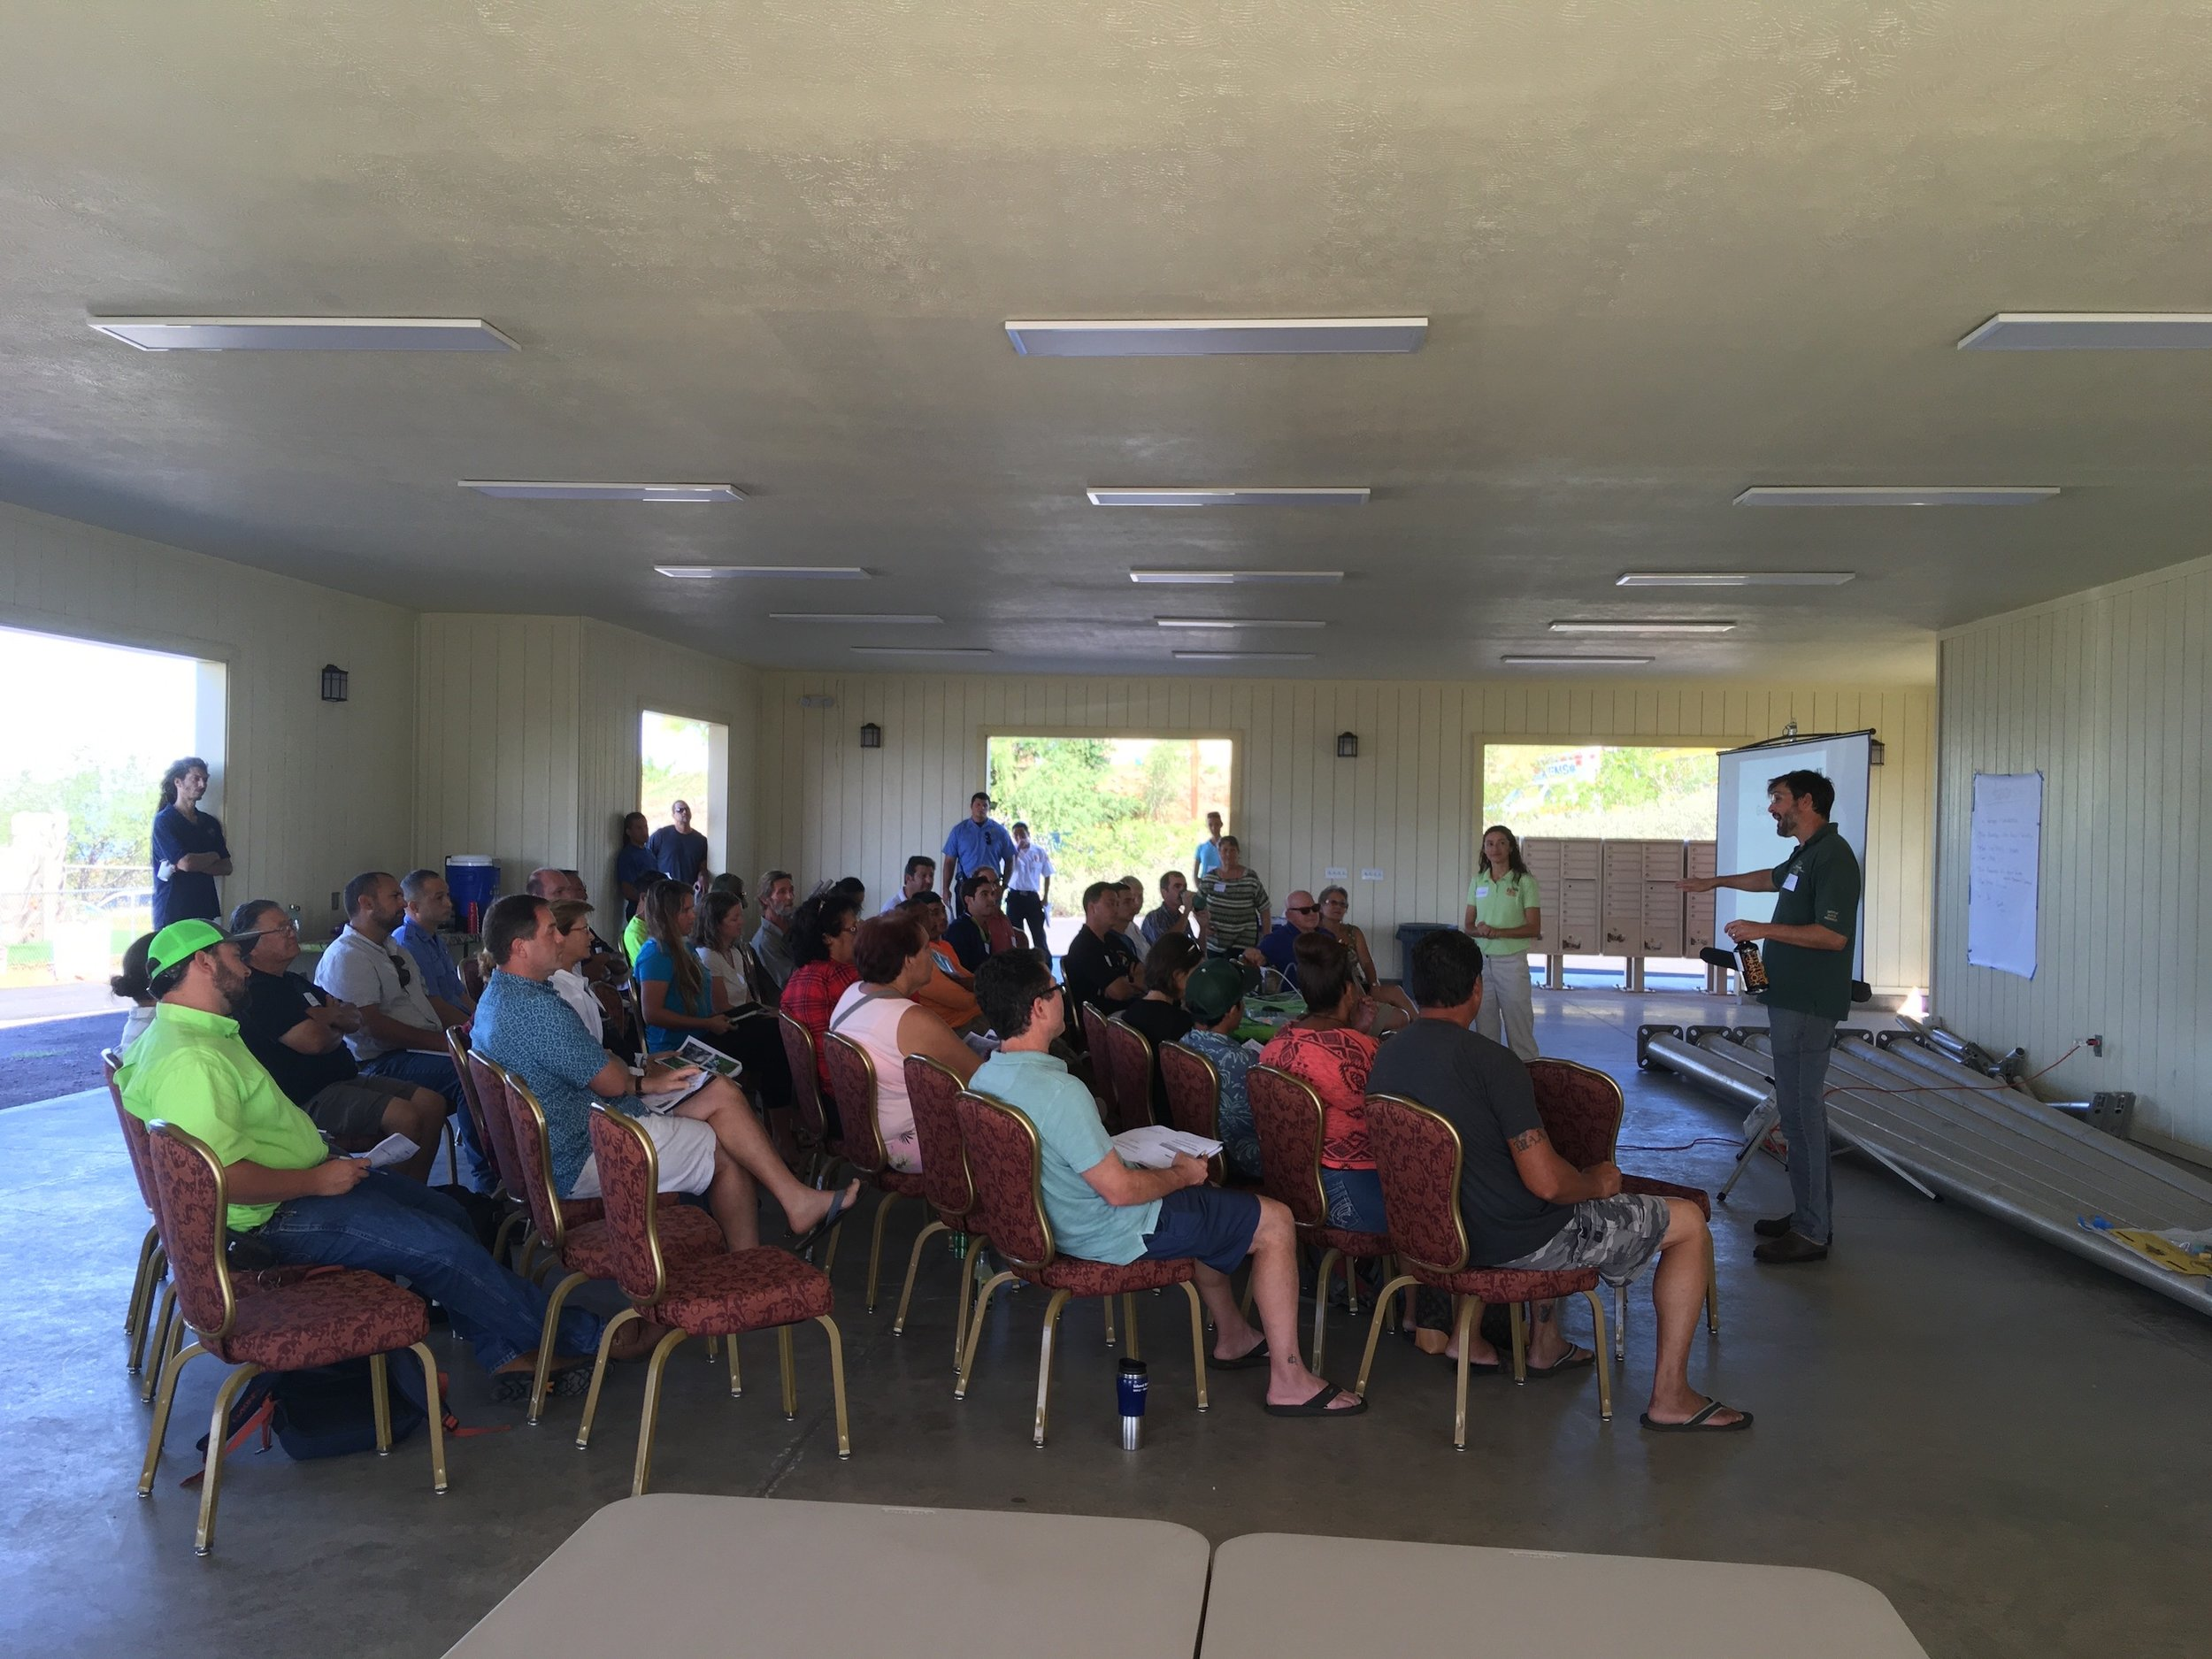 Hawaii Island Kailapa Vegetative Fuels Management Collaborative Action Planning Workshop_2_26_2019_14.jpg